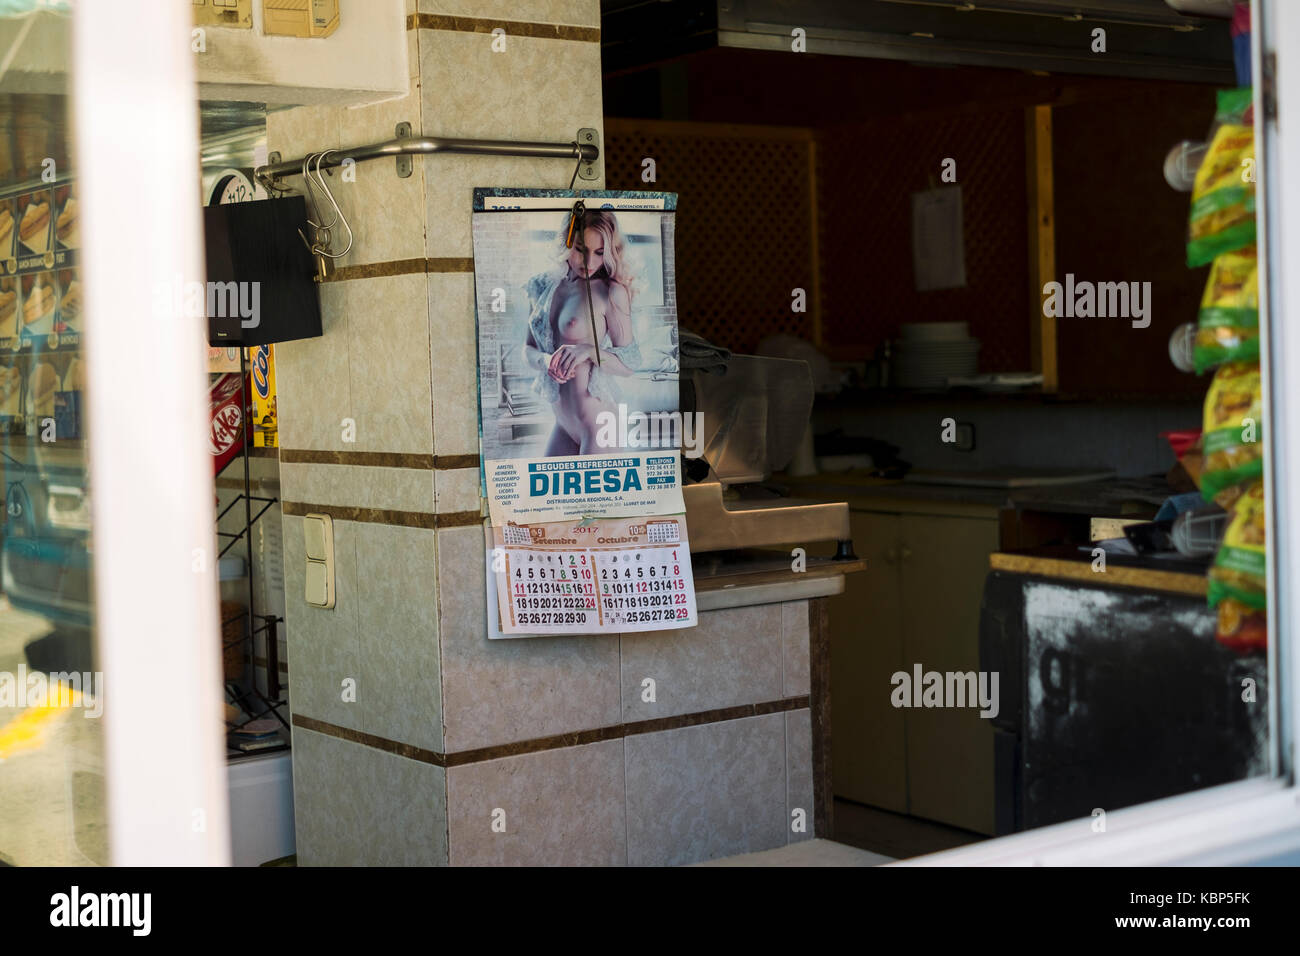 Topless pin-up calendar in a cafe in Lloret de Mar, Spain Stock Photo